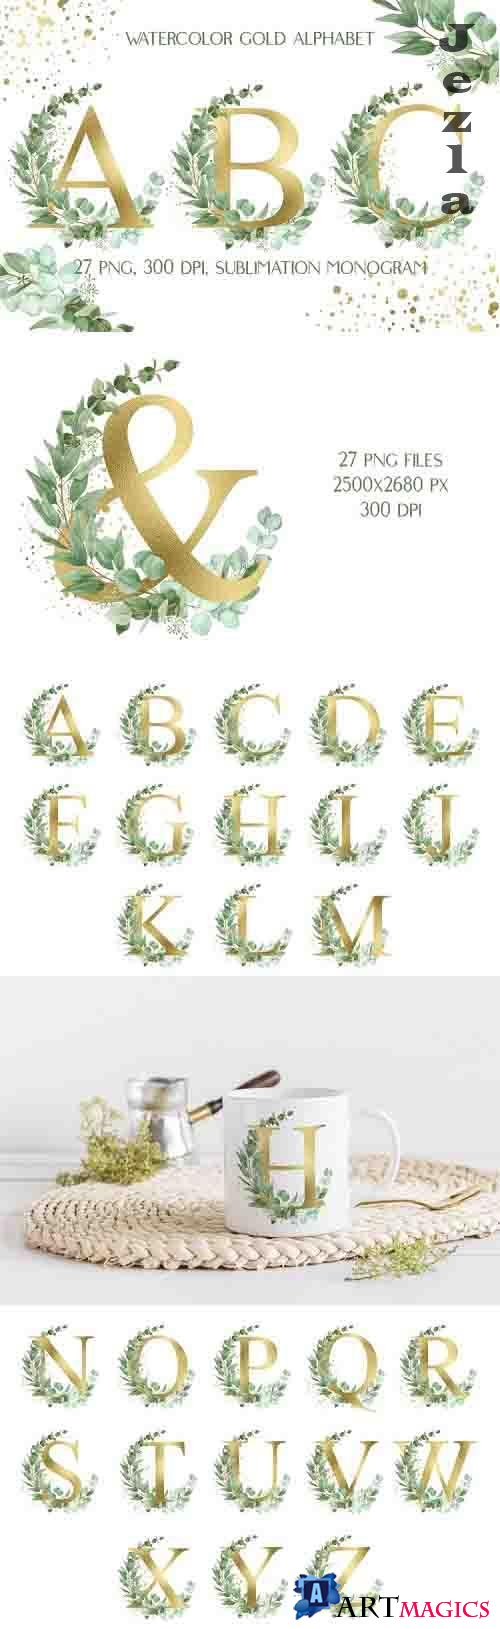 Sublimation Gold Alphabet | Eucalyptus Monogram Clip Art - 1238707